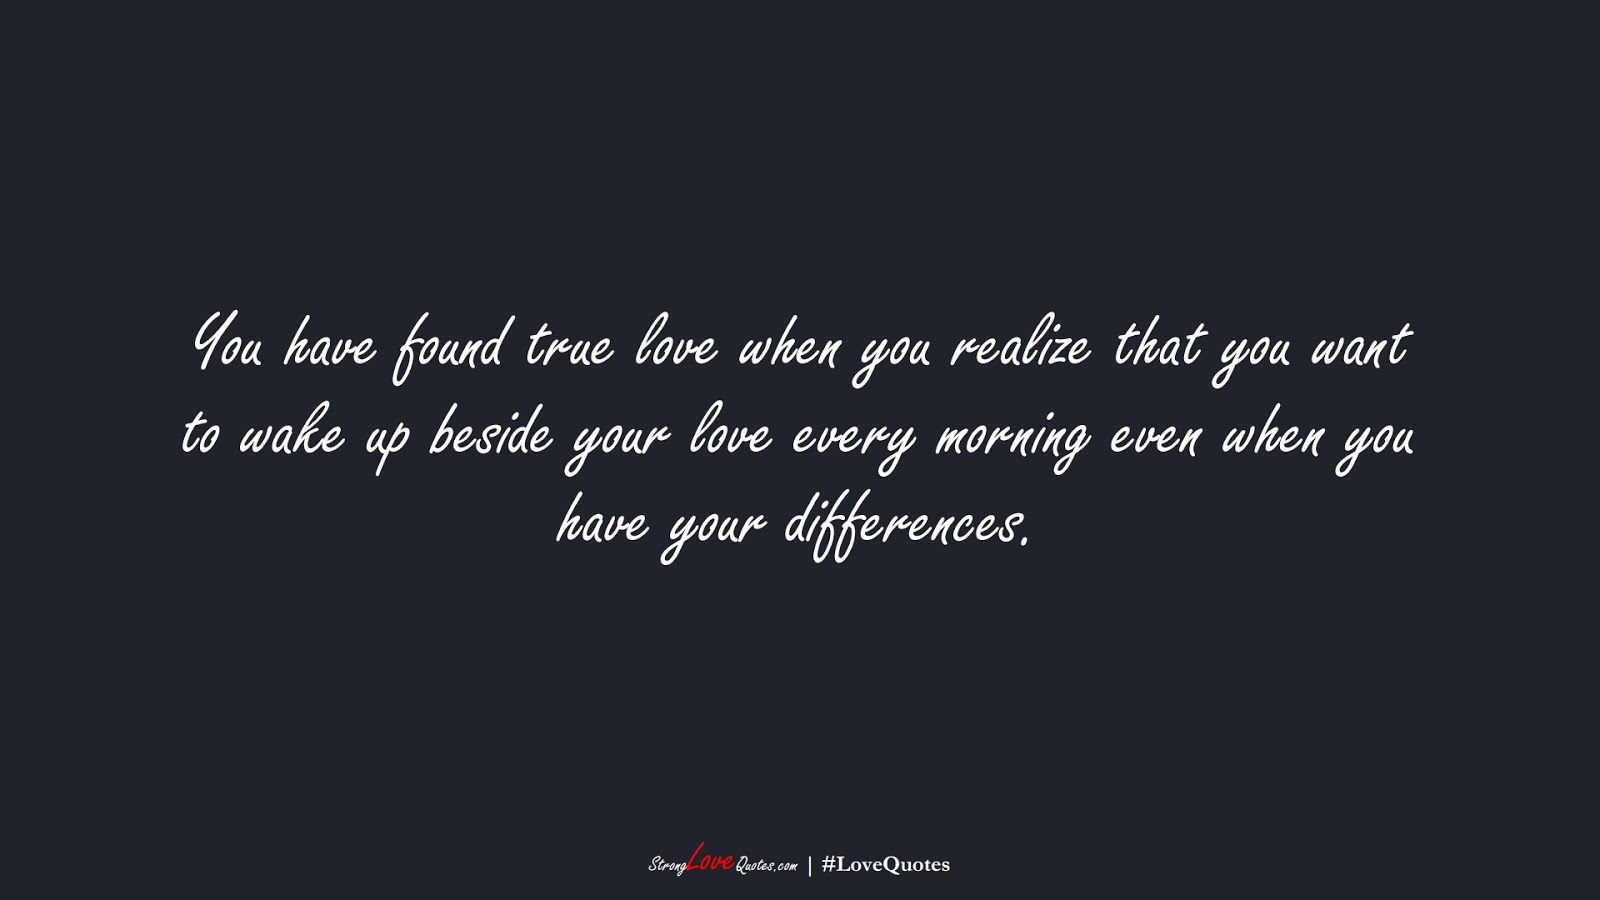 You have found true love when you realize that you want to wake up beside your love every morning even when you have your differences.FALSE